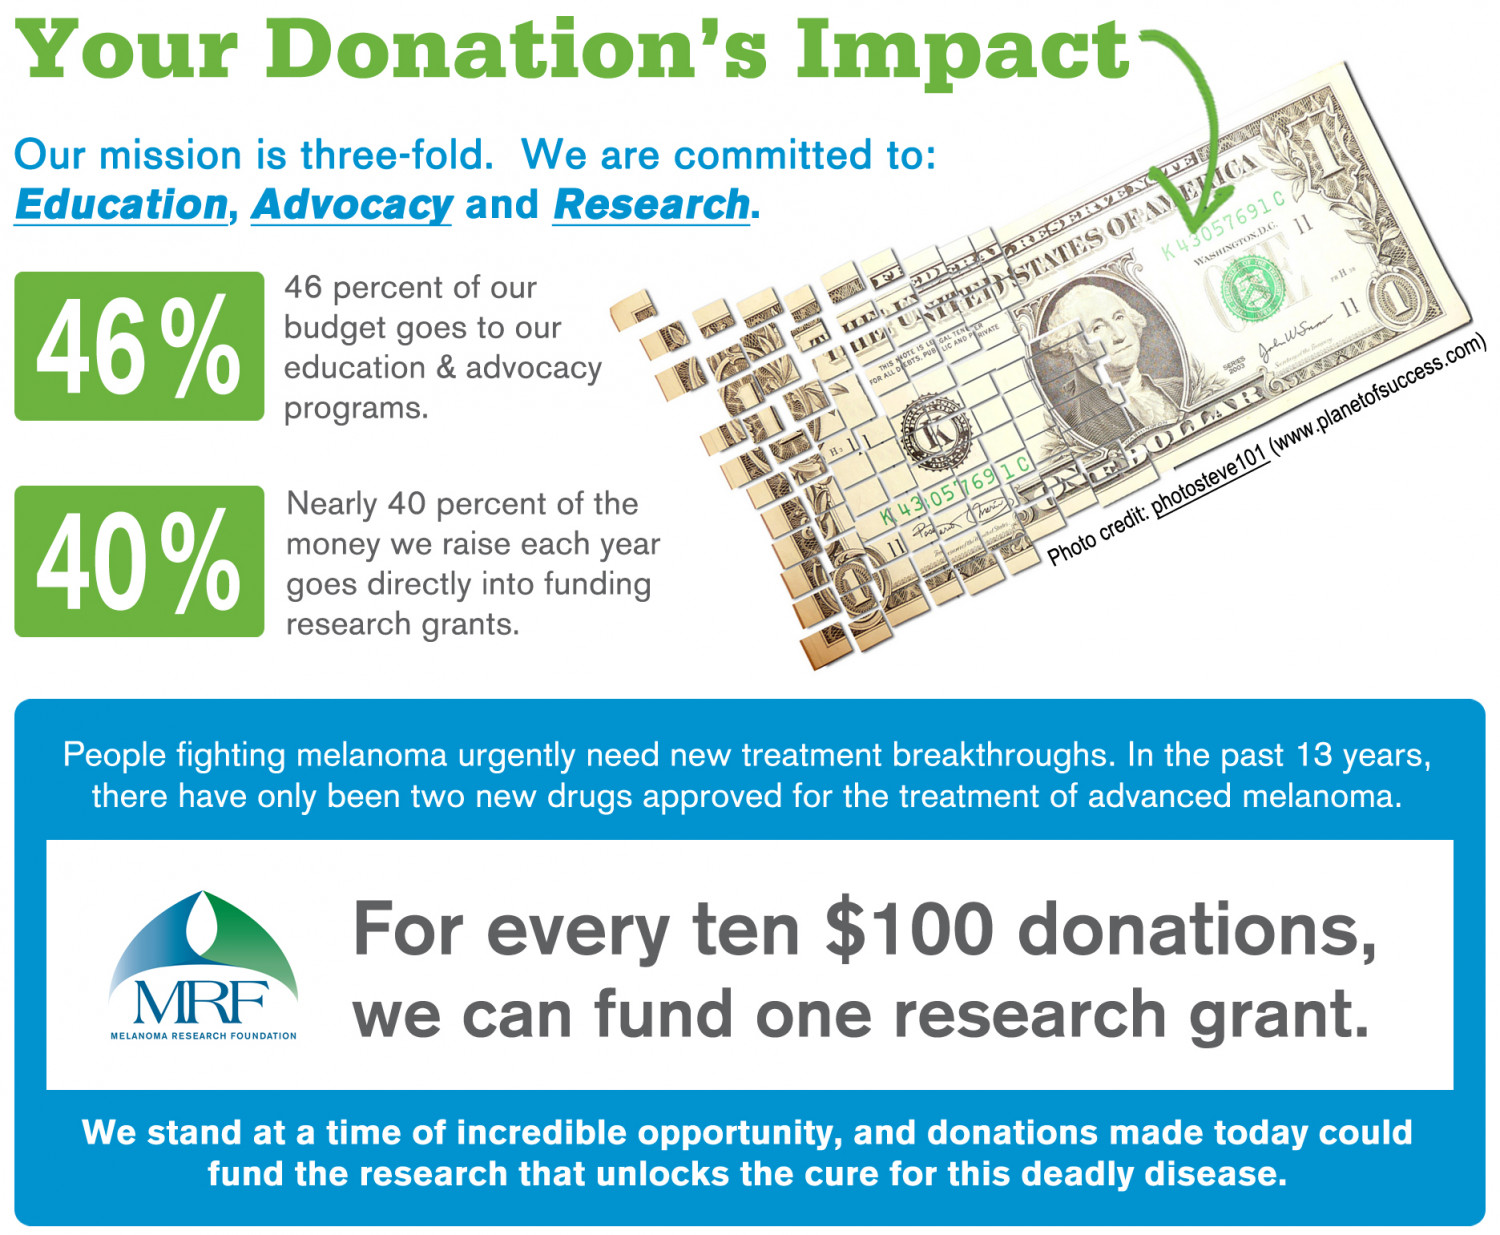 Your Donation's Impact at MRF Infographic